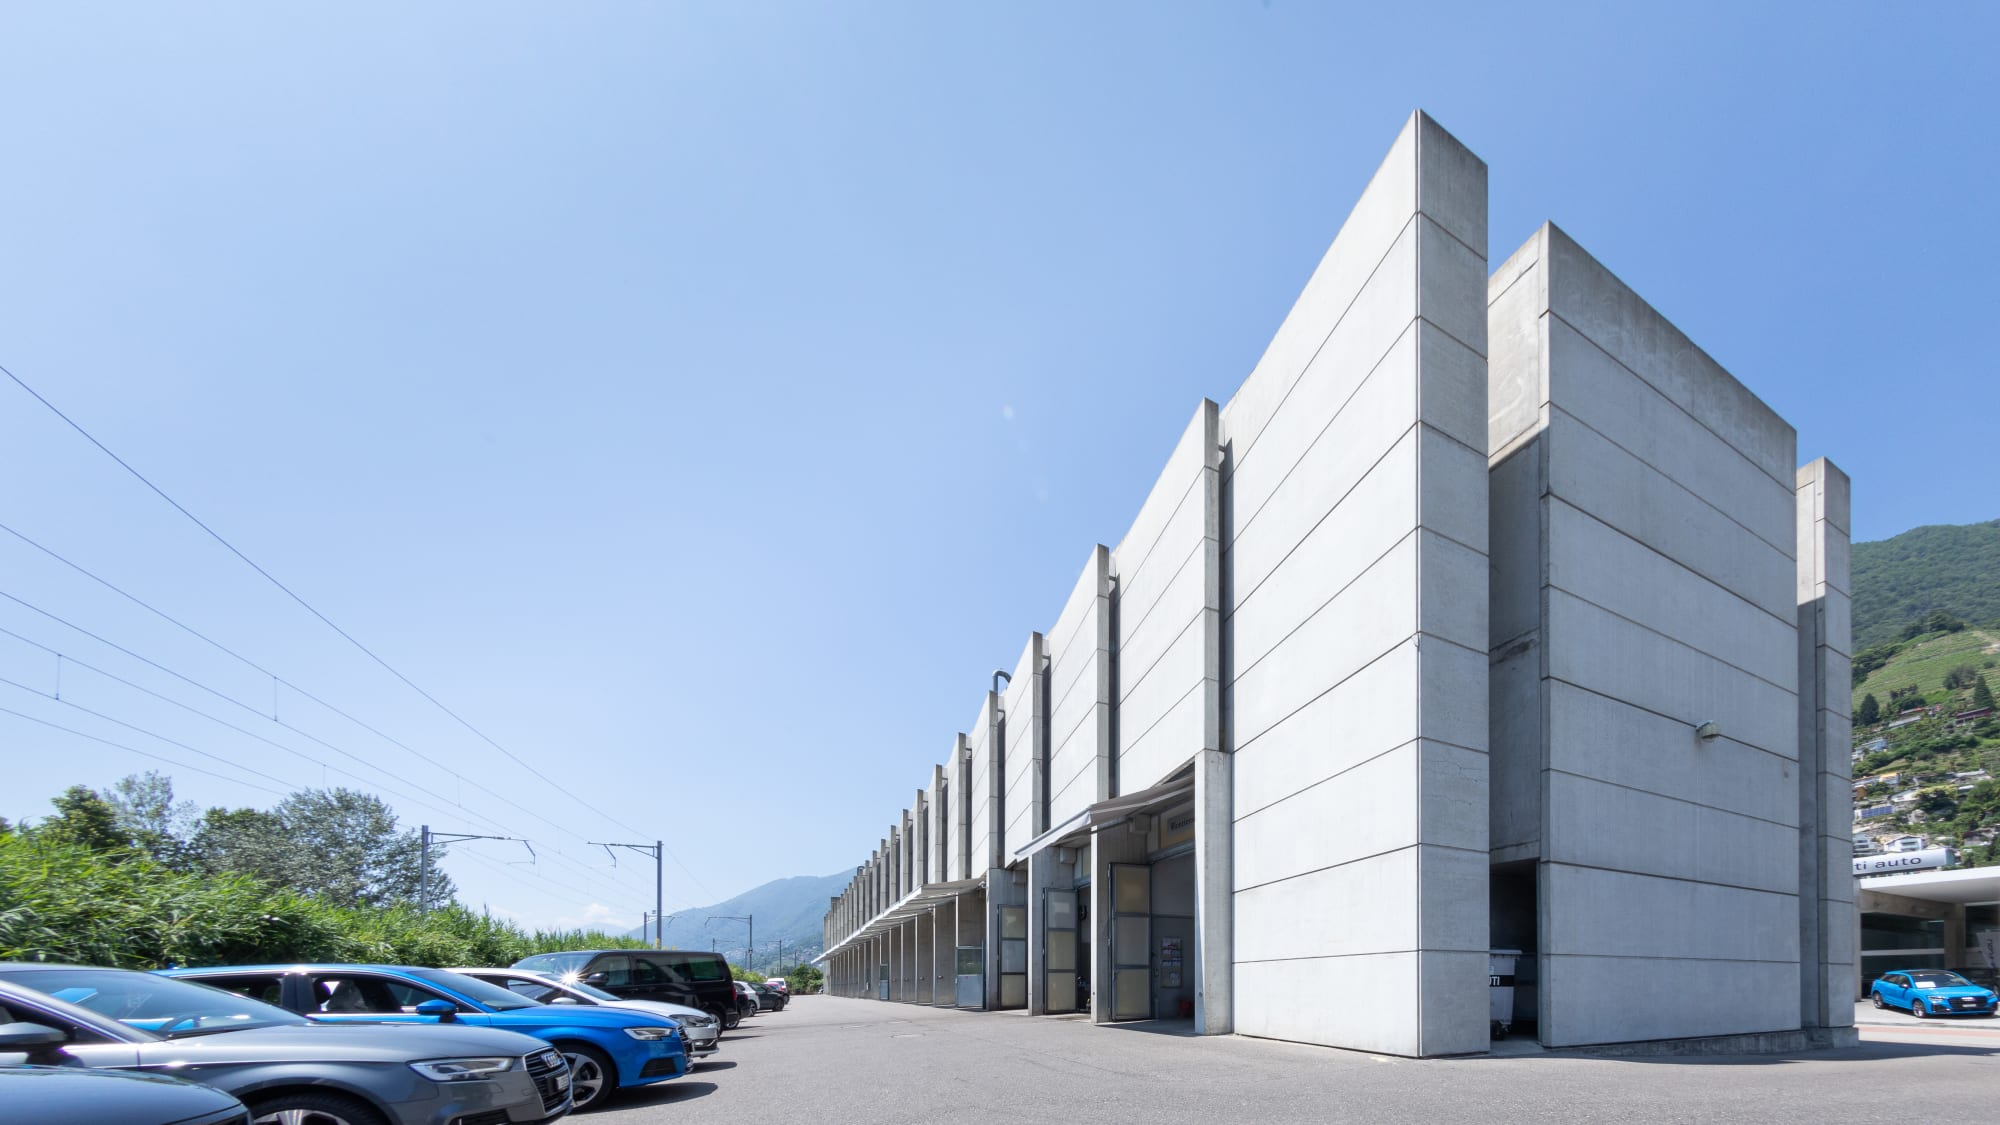 Officina stabile-0820